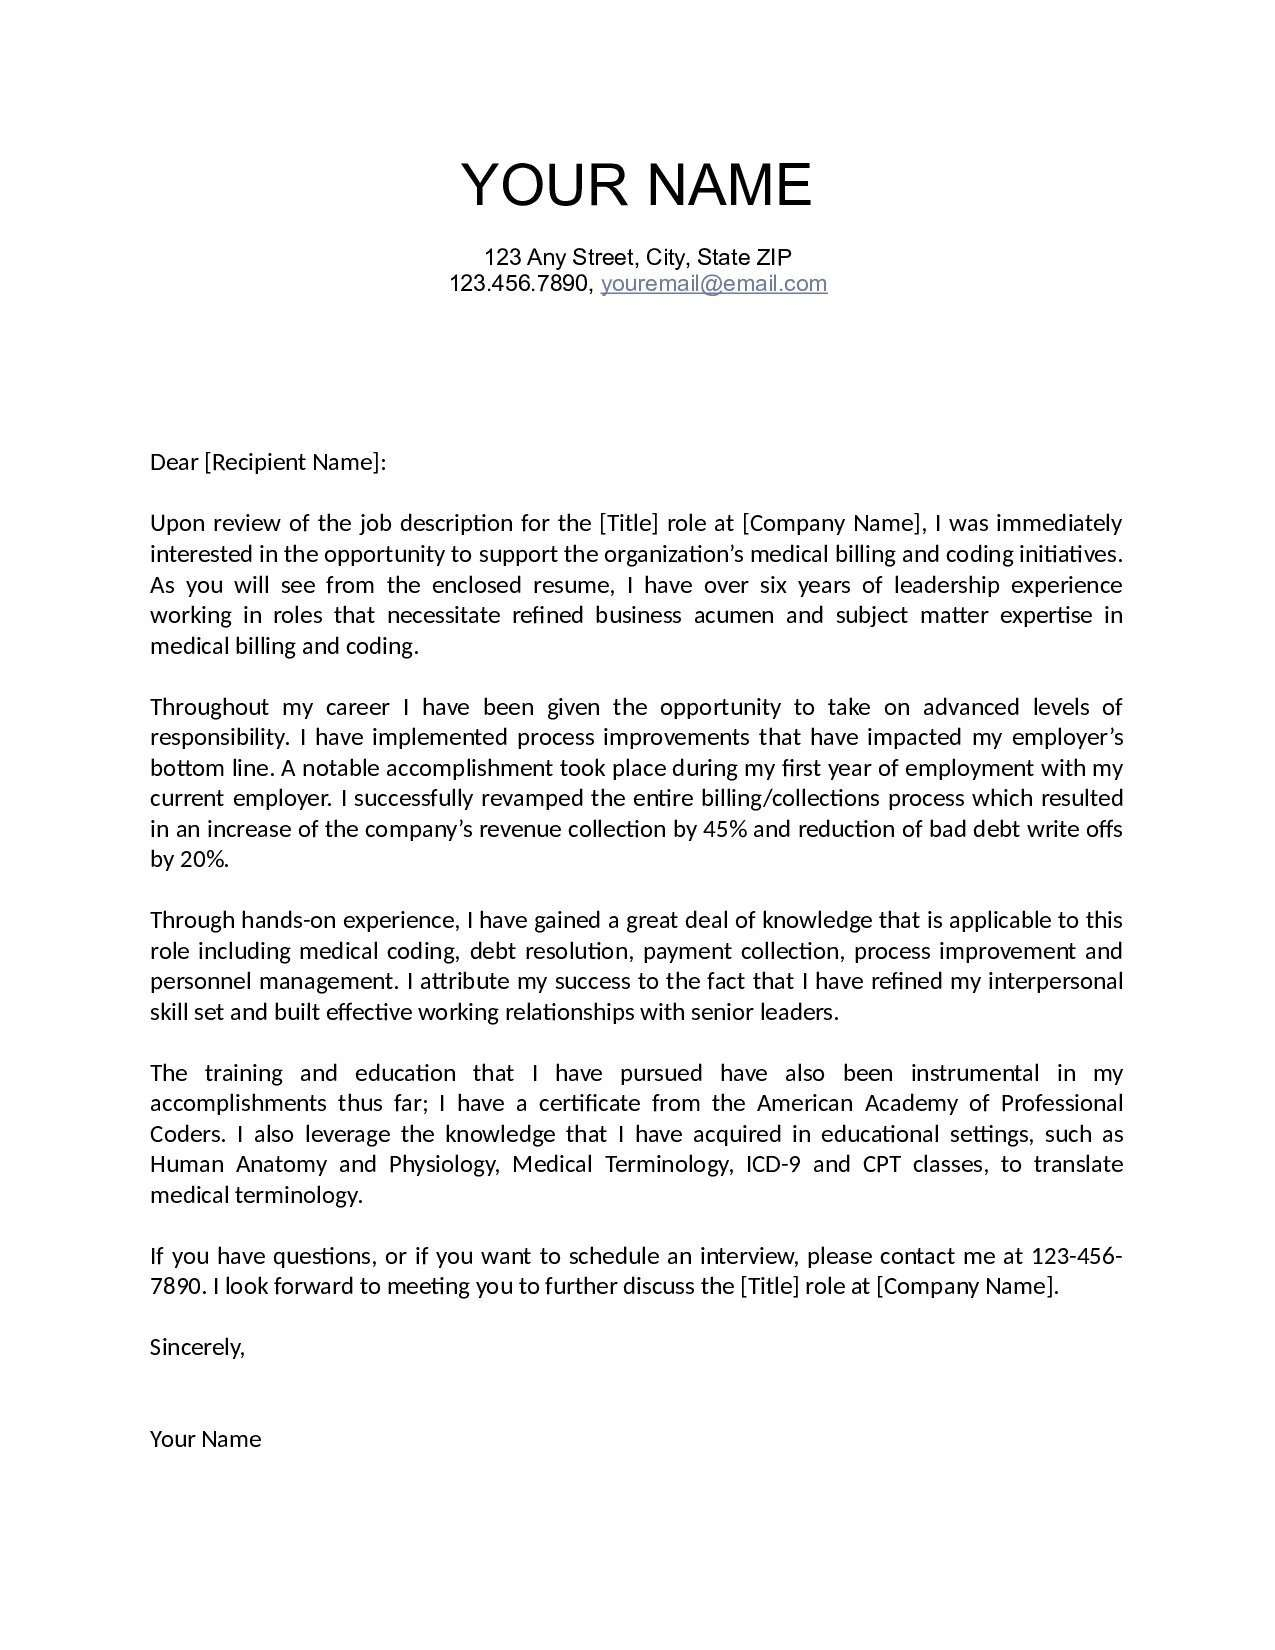 Monster Cover Letter Template - 21 Inspirit Monster Writing Template Image Qoetcex